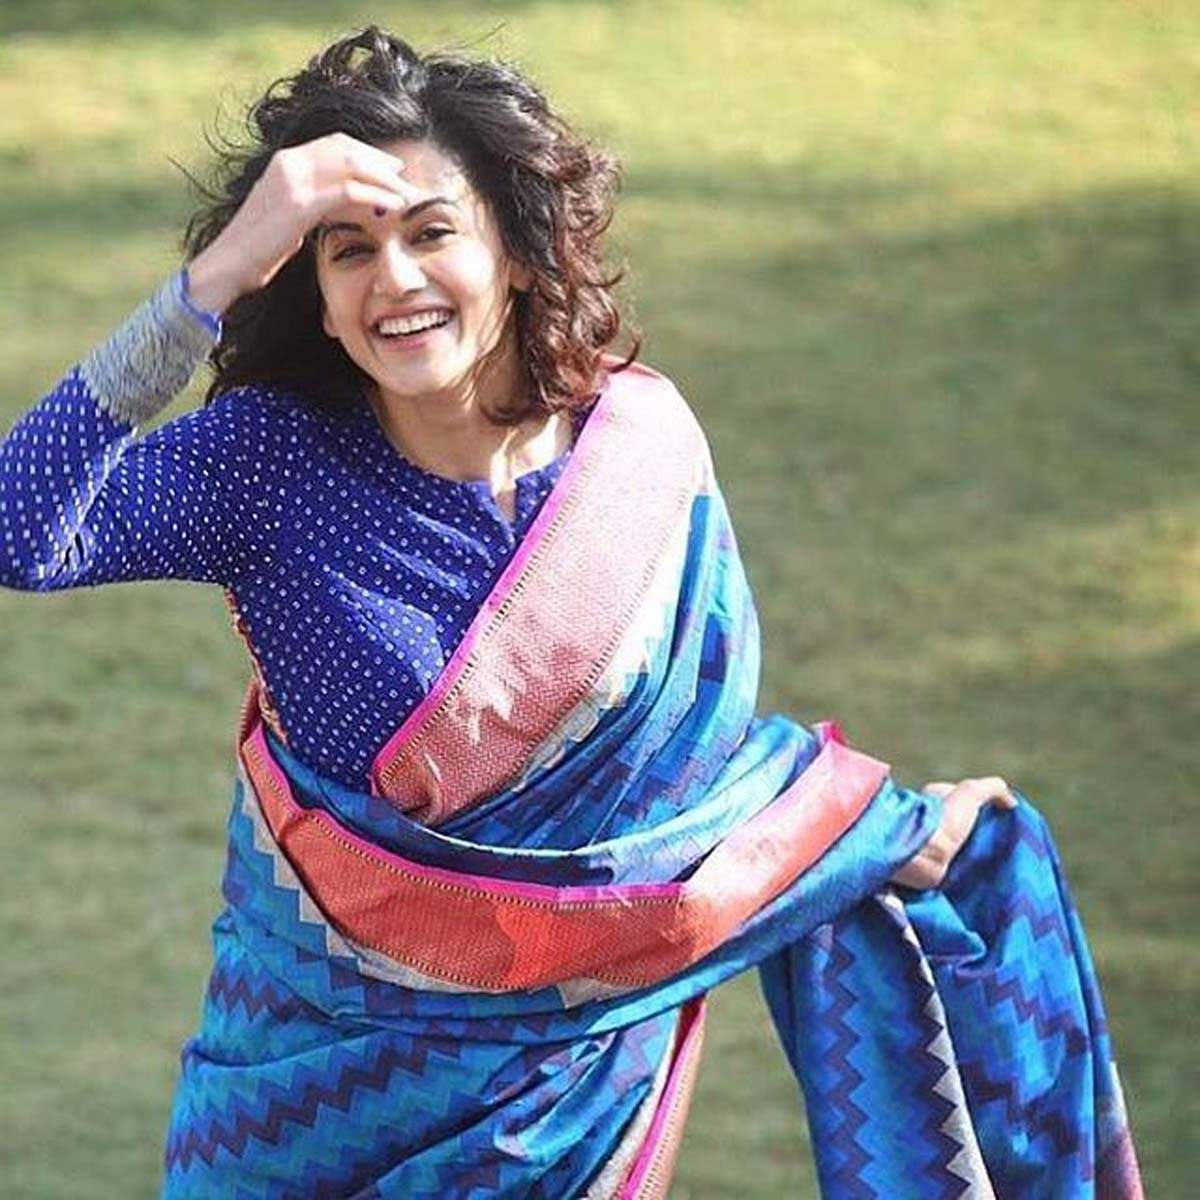 'Super Deluxe' actor Vijay Sethupathi and Taapsee Pannu to team up for Tamil comedy